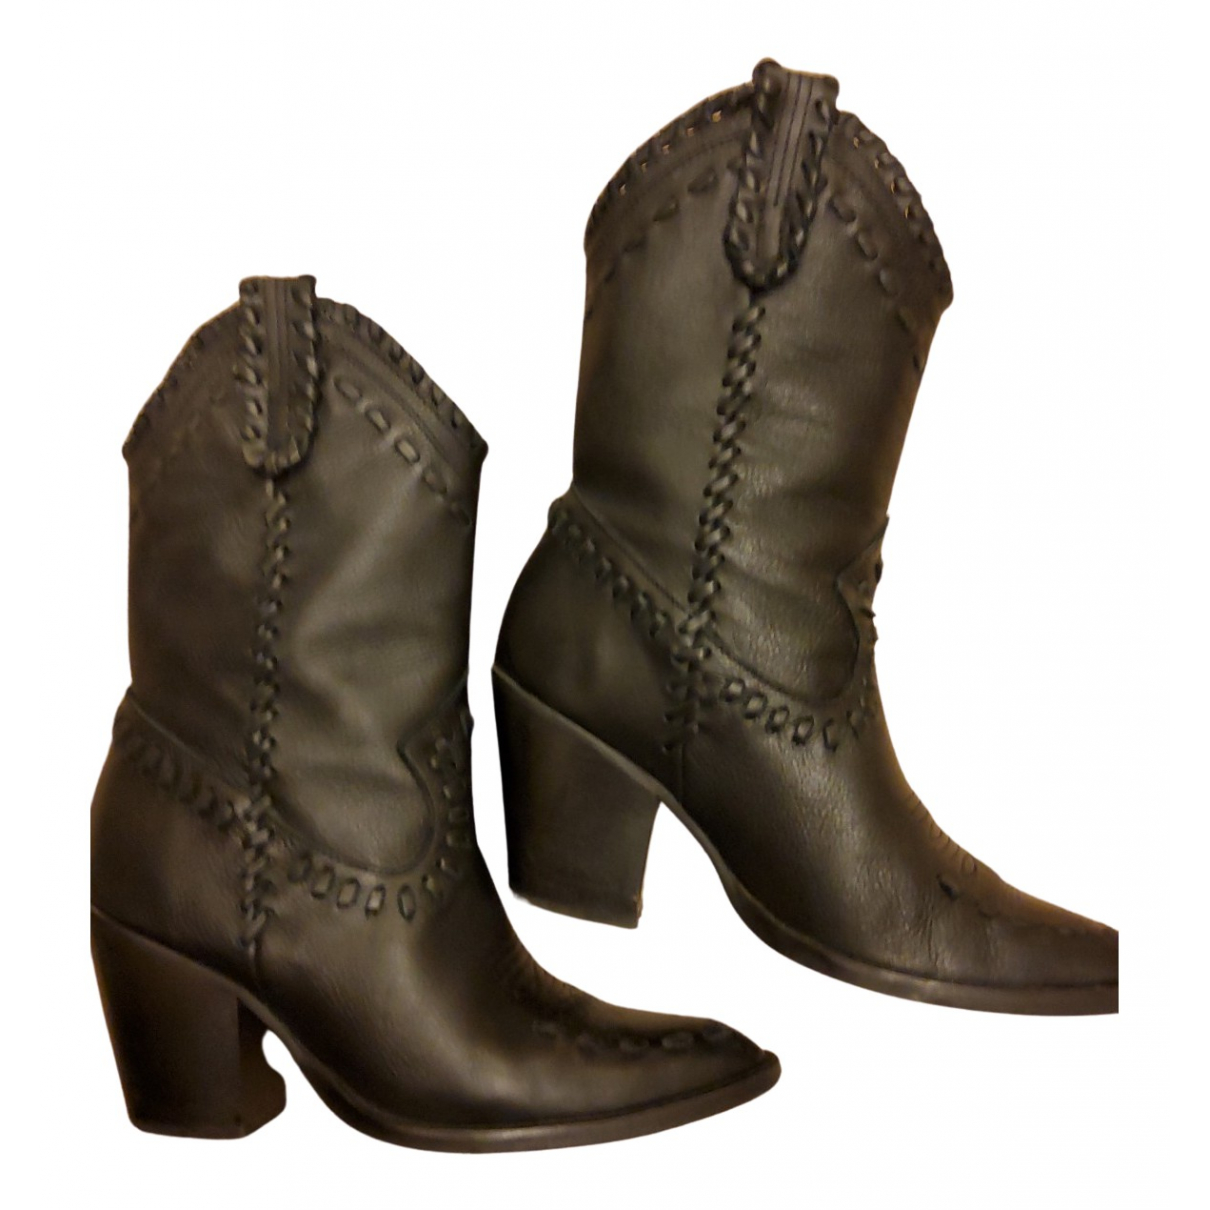 Mango N Black Leather Boots for Women 38 EU